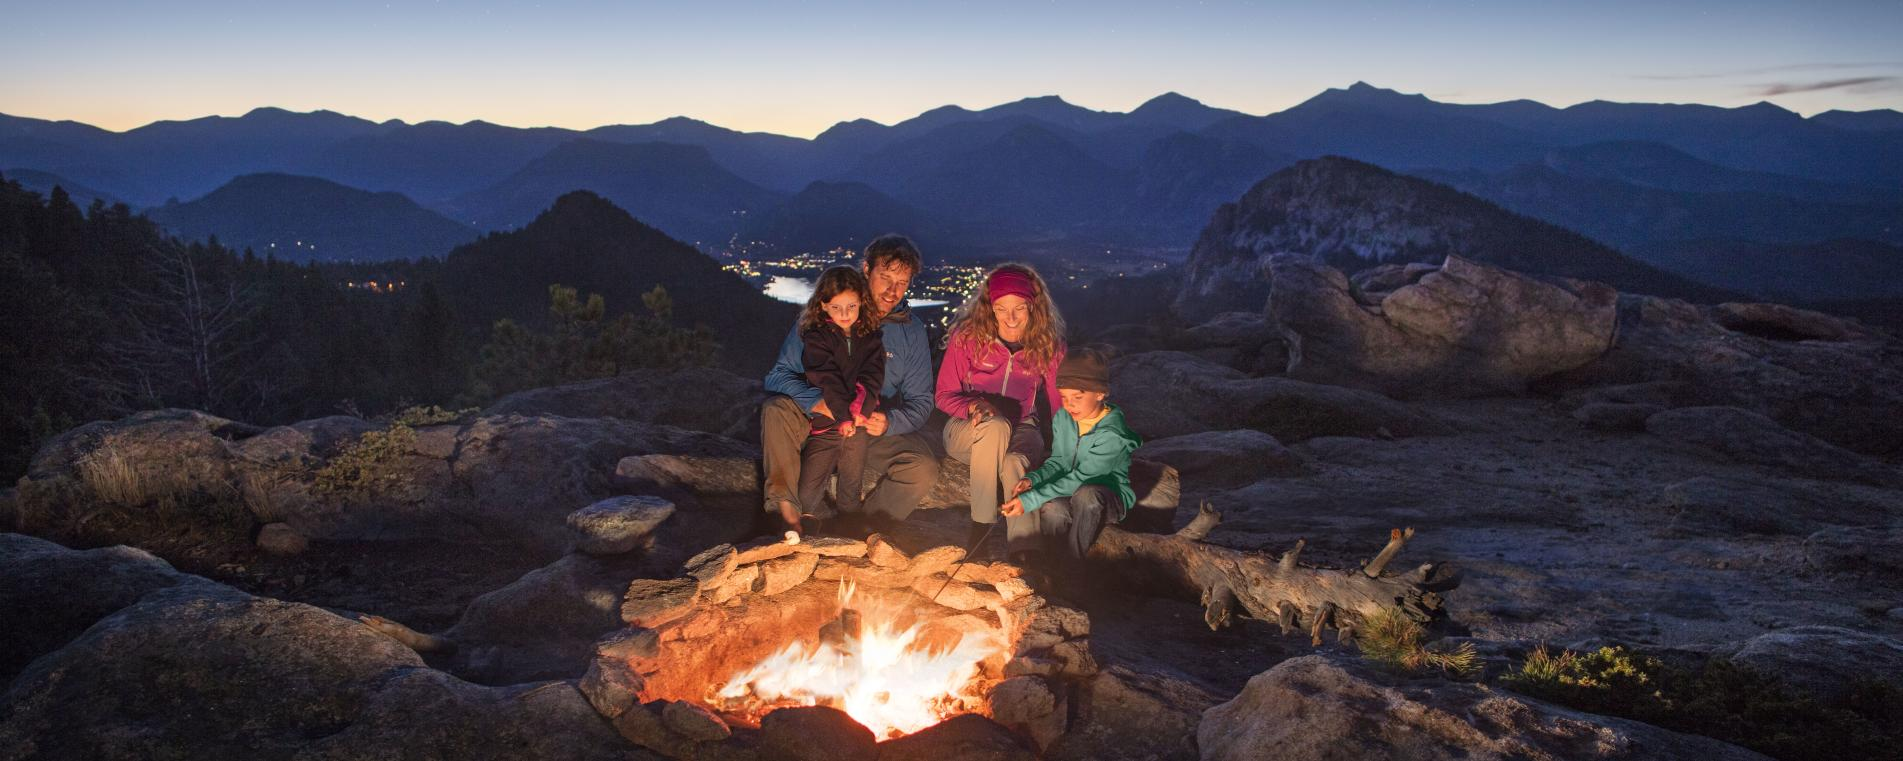 Family around a campfire above Estes Park